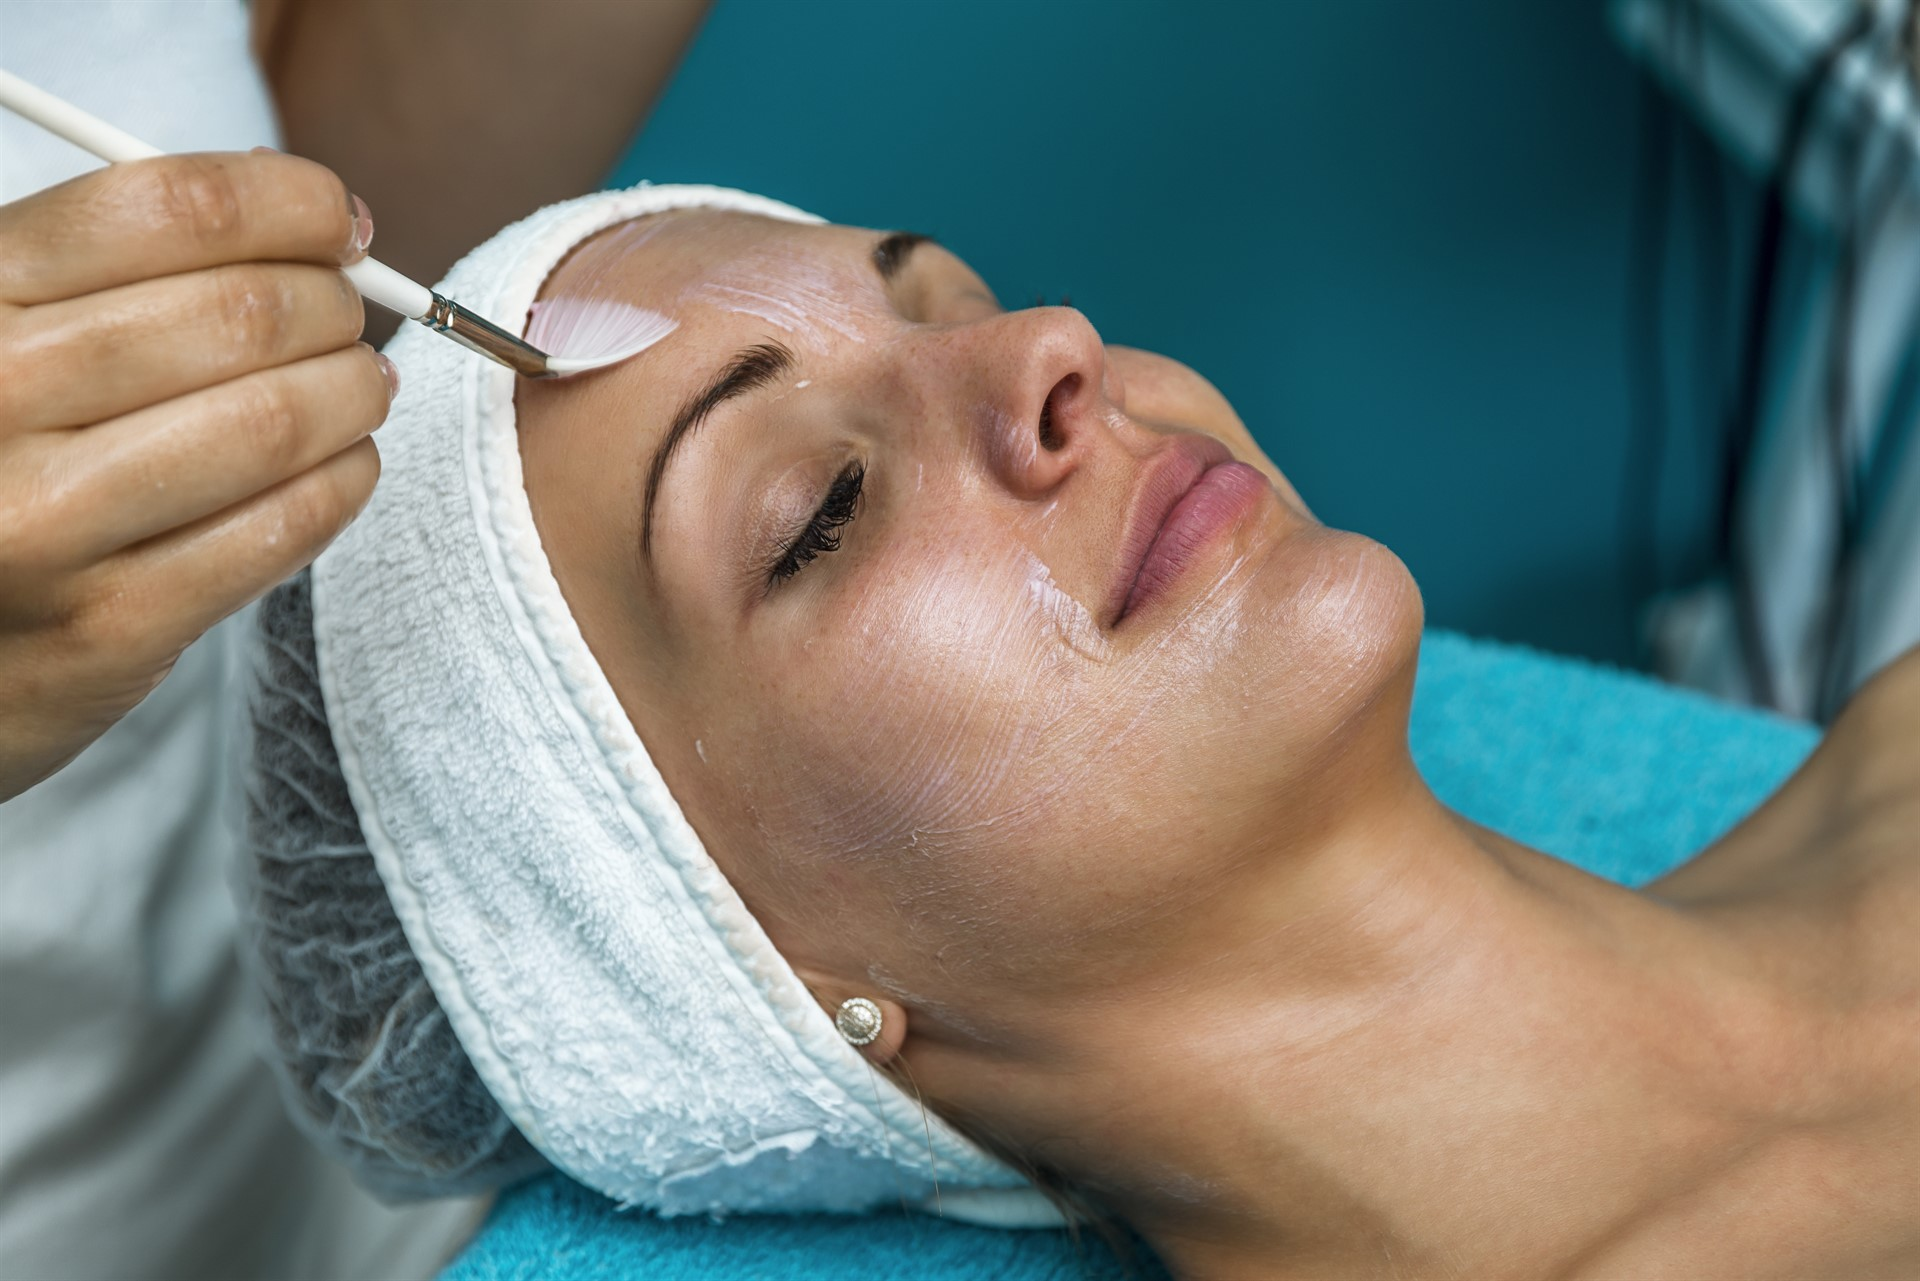 Appealing results start with a chemical peel